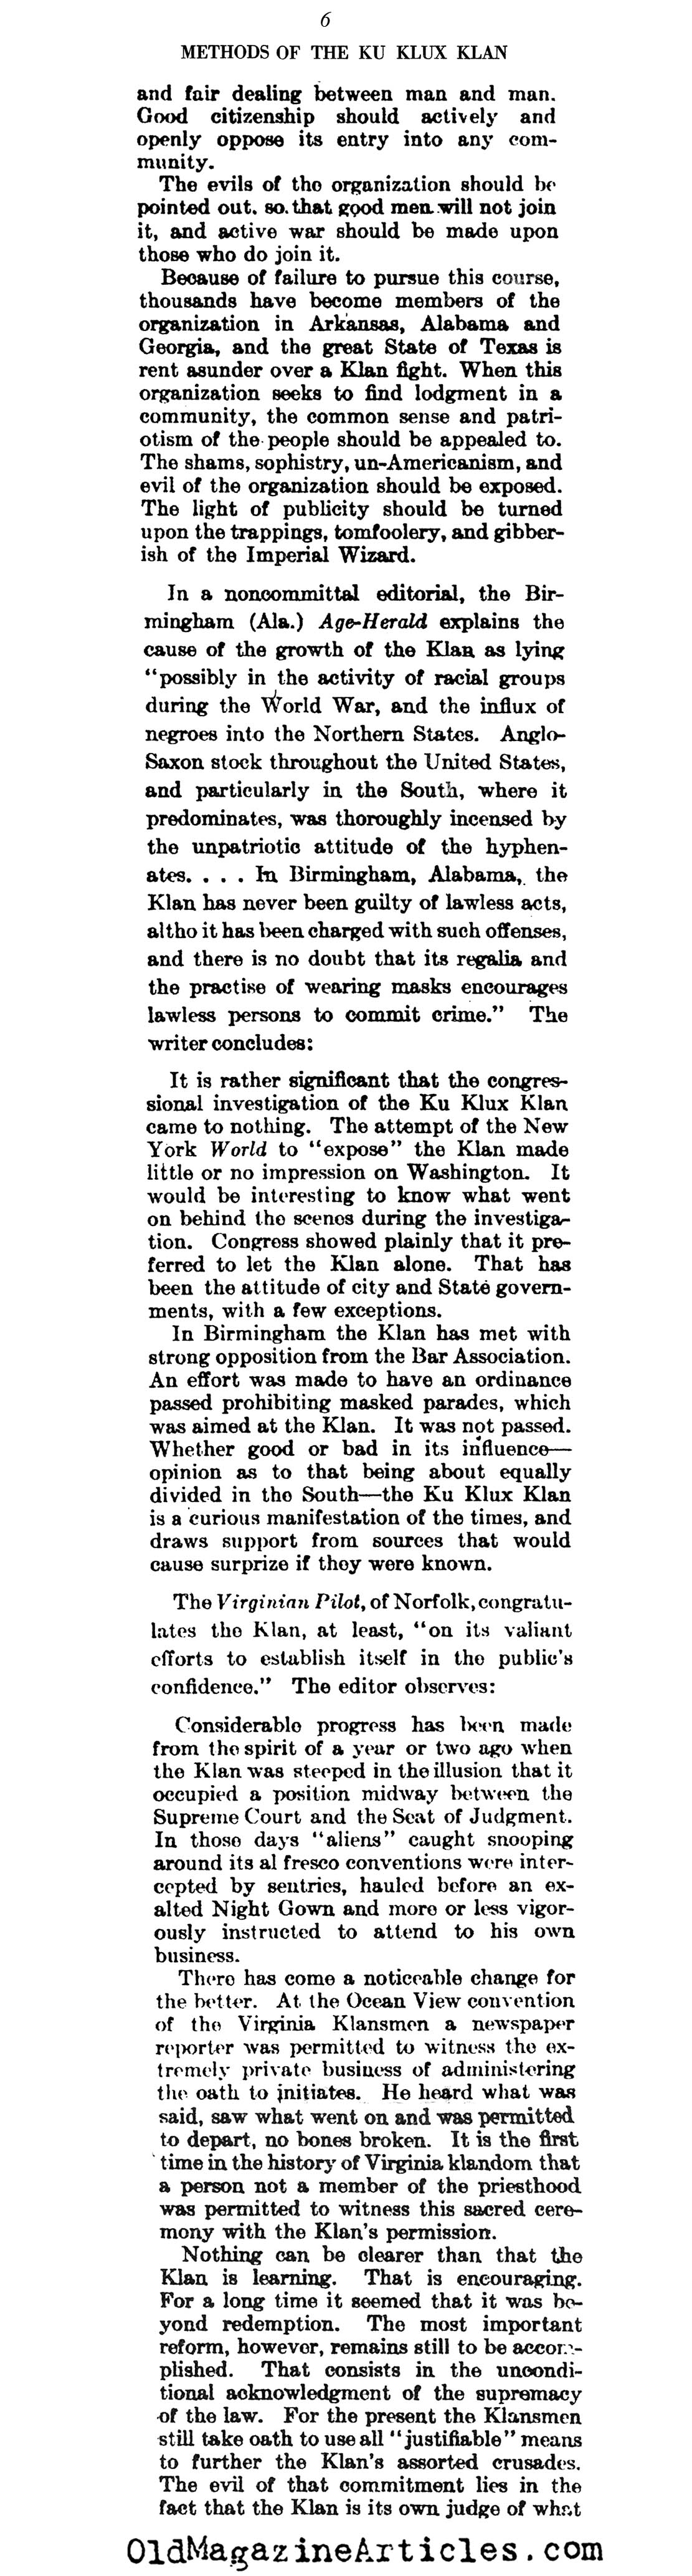 Klan Methods and Customs (Literary Digest, 1922)